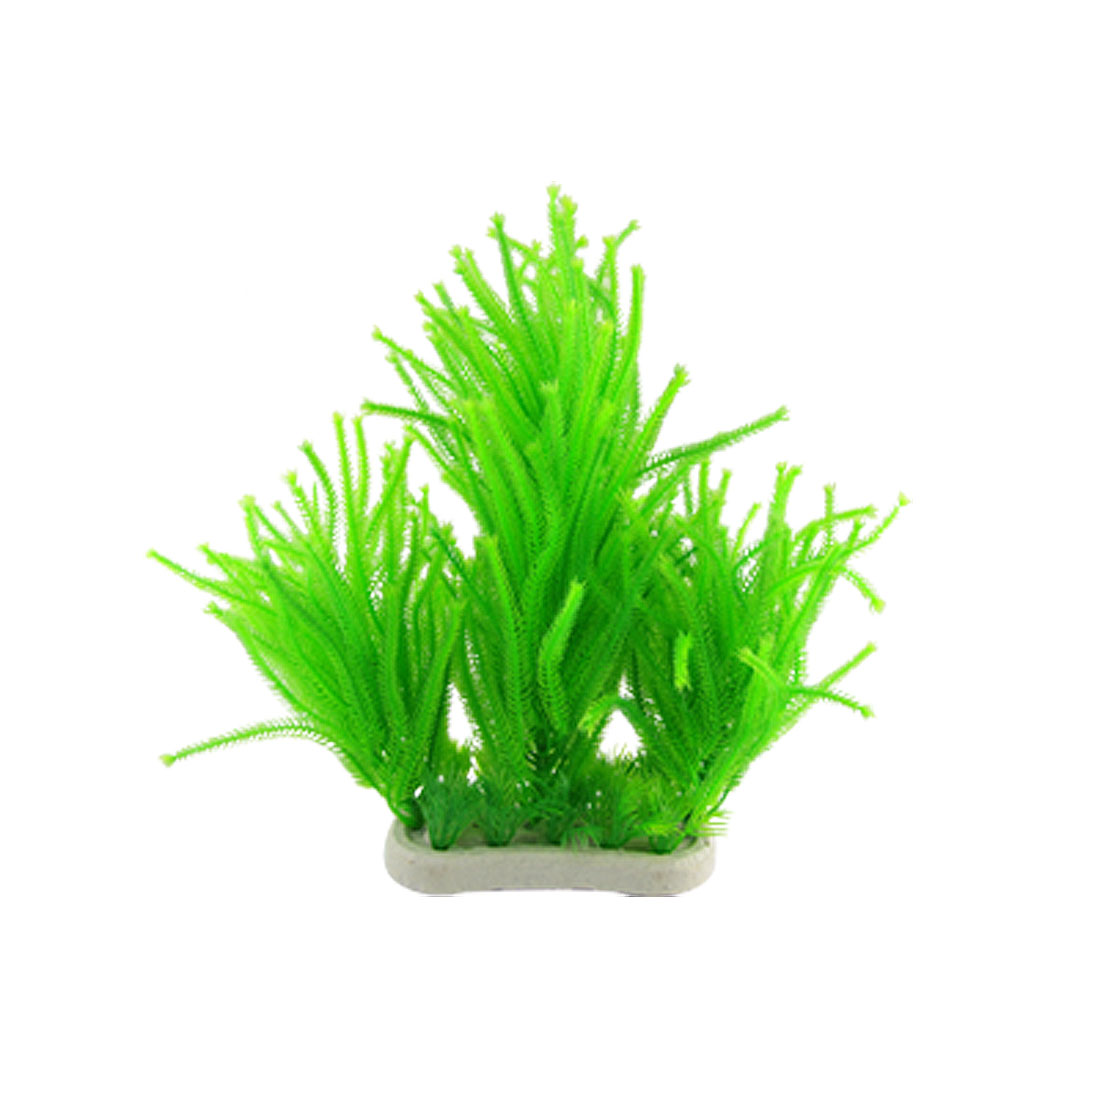 Green-Plastic-Fish-Tank-Plant-Aquarium-Grass-Ornaments